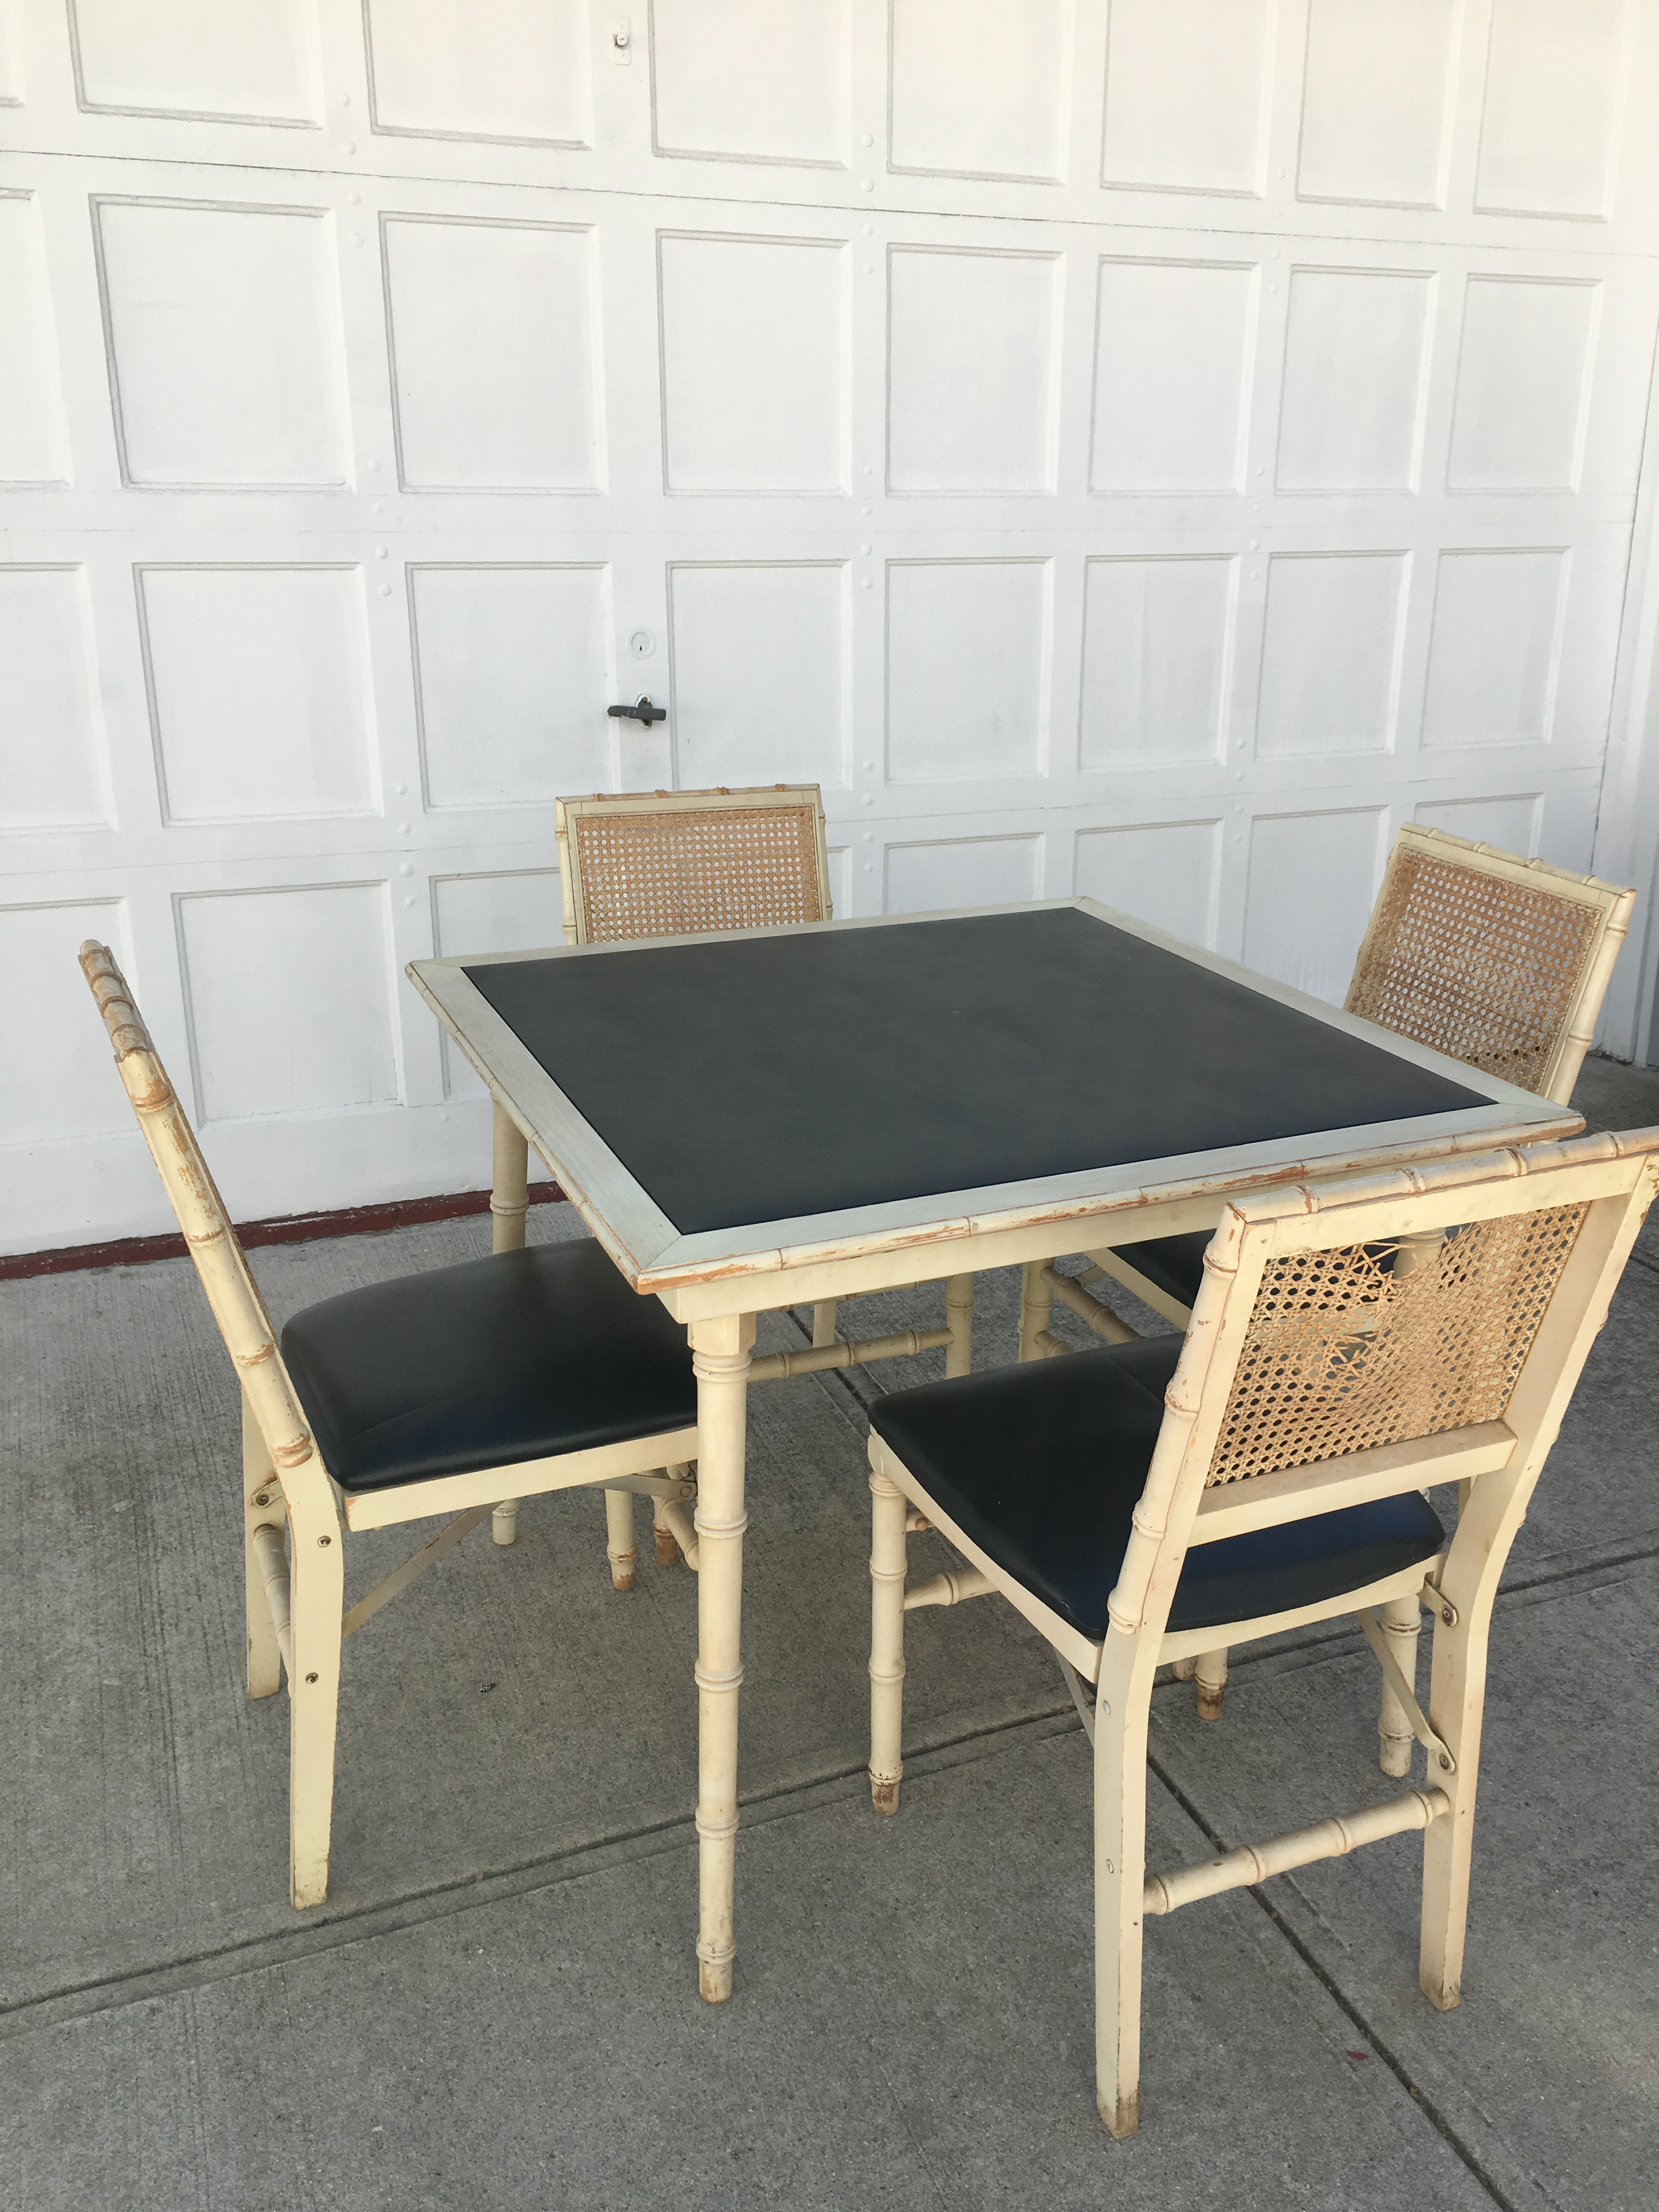 stakmore faux bamboo foldable vintage table chairs